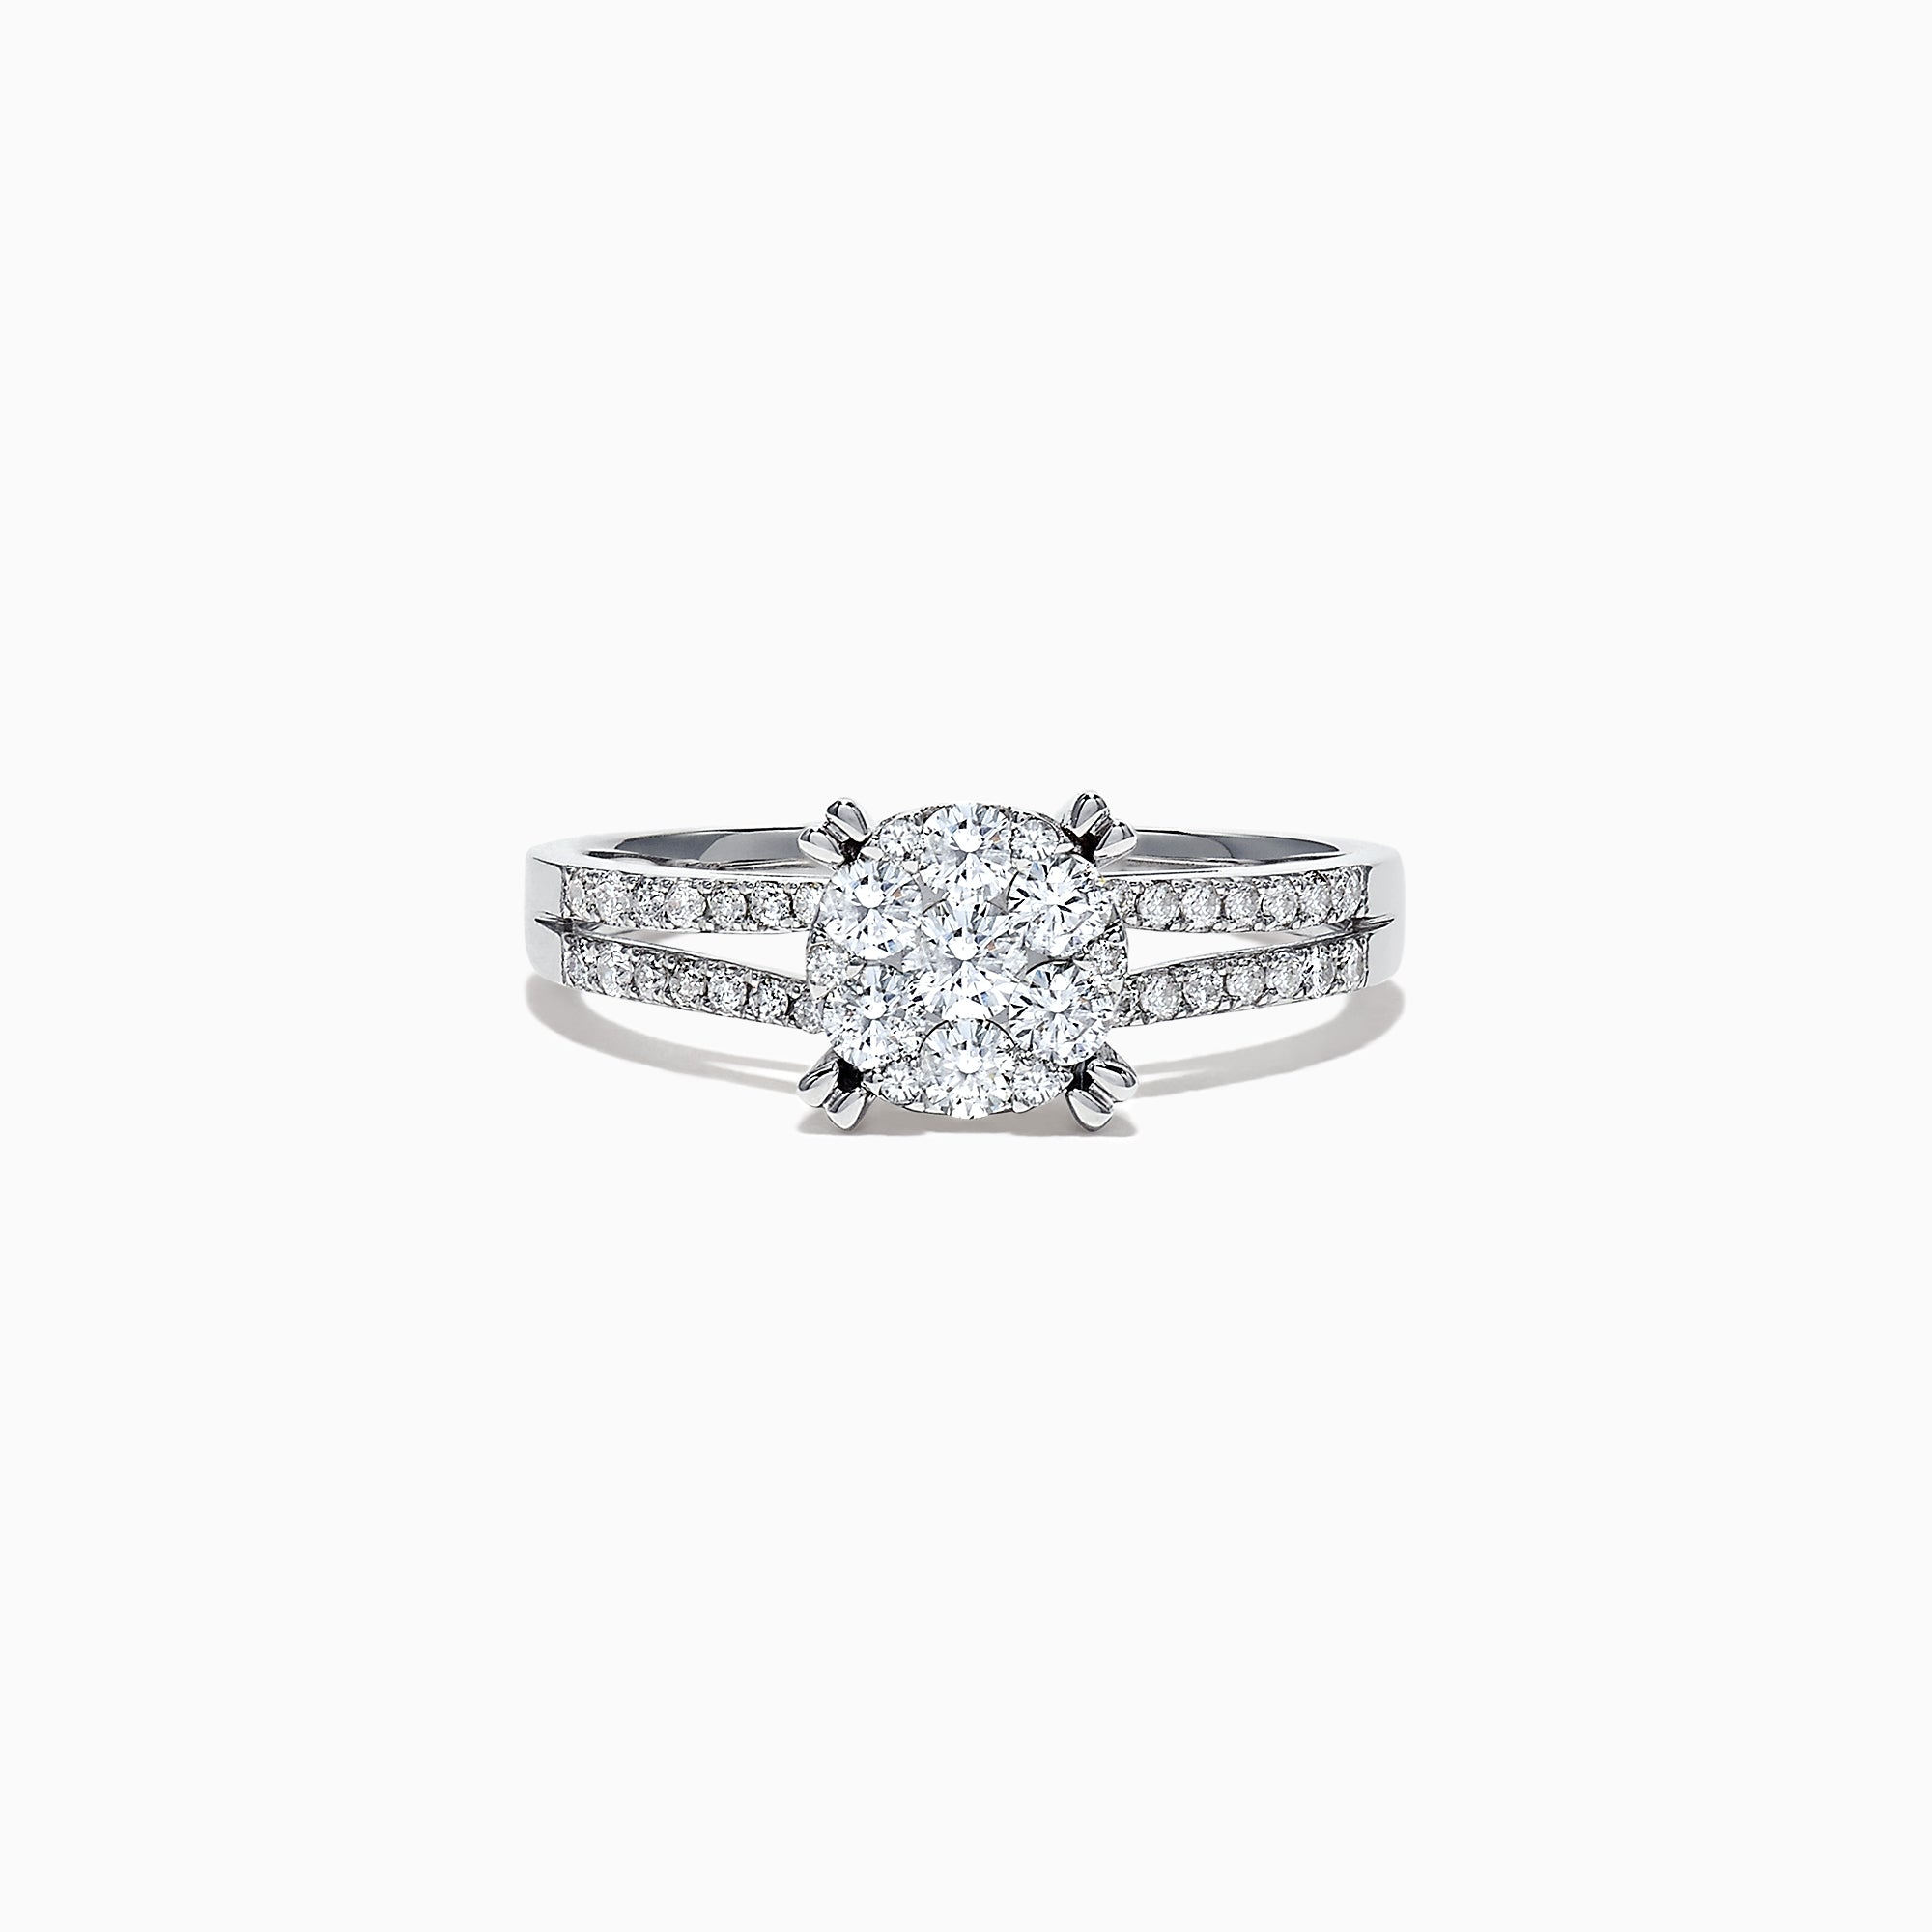 Effy Bouquet 14K White Gold Diamond Cluster Engagement Ring, 0.56 TCW